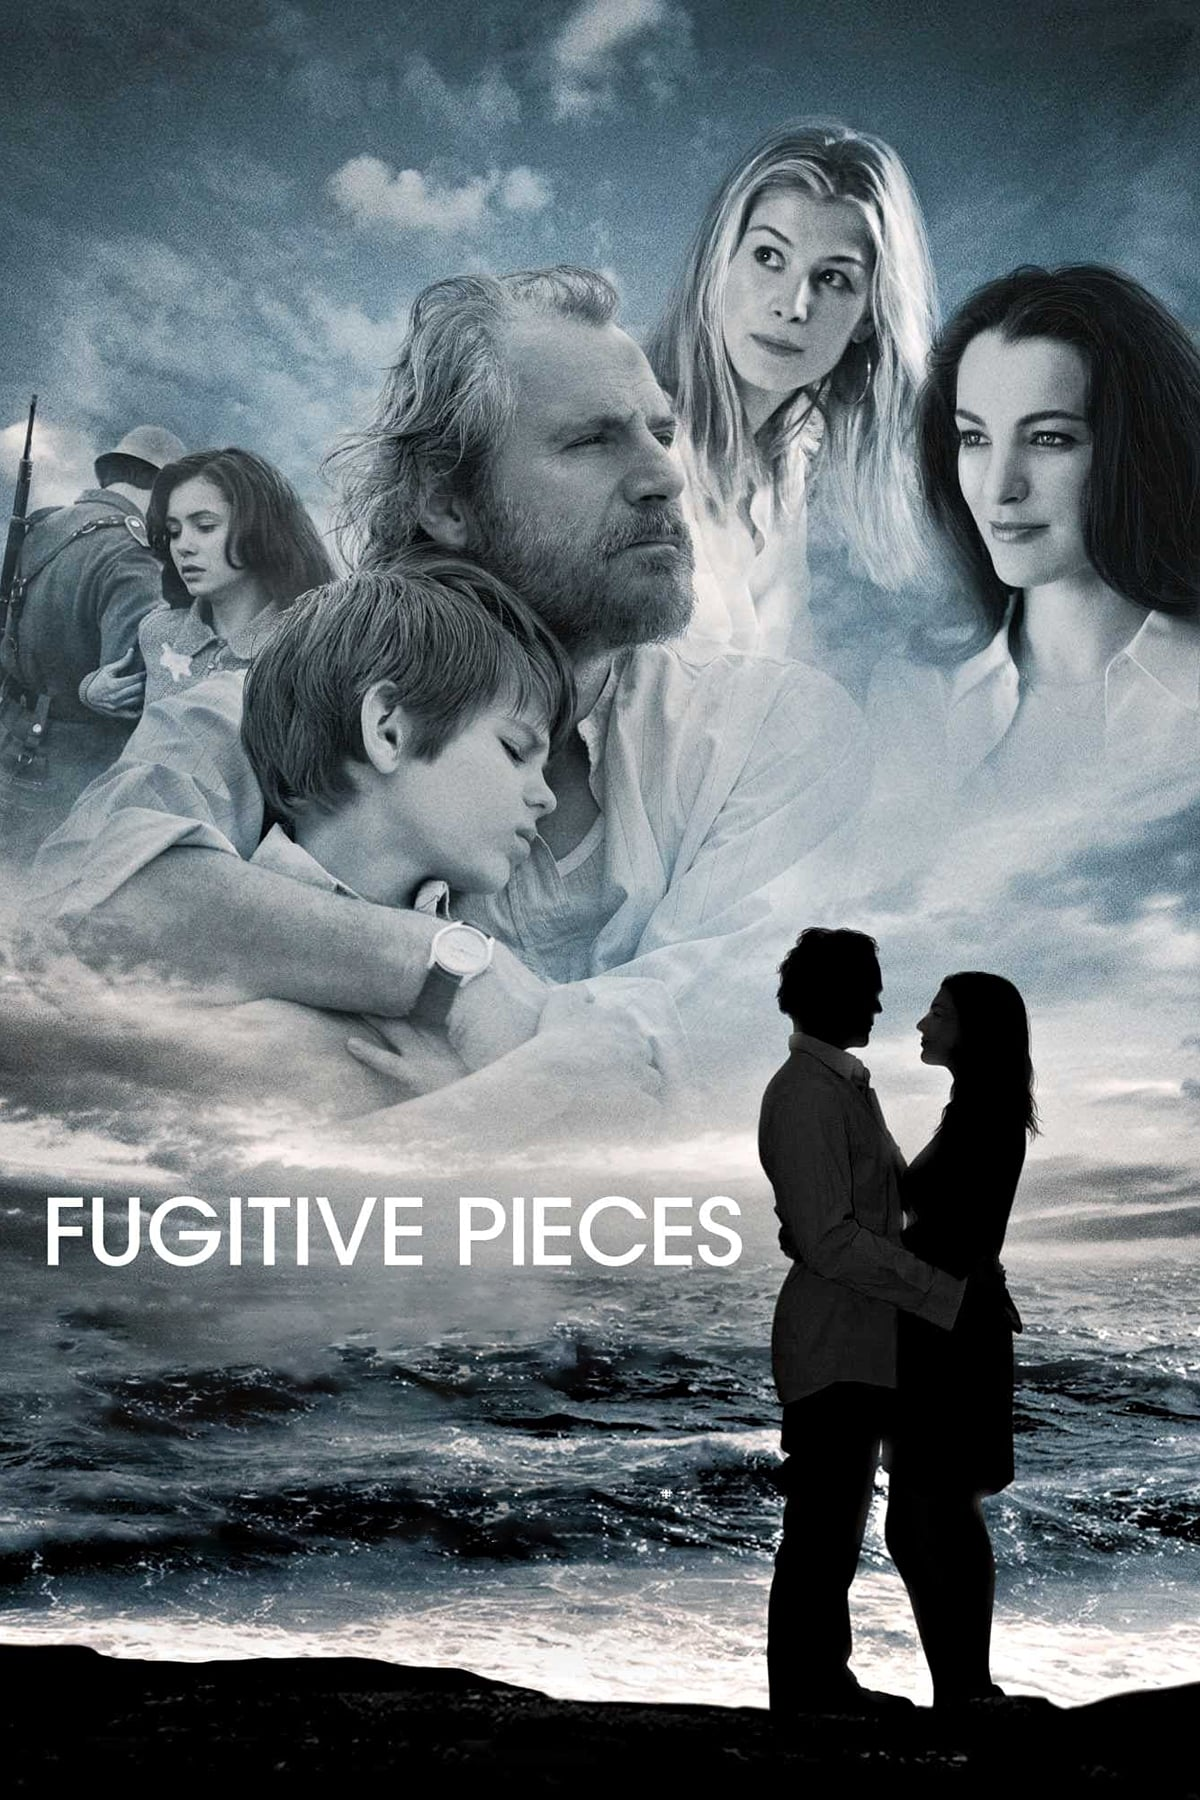 Fugitive Pieces Movie Streaming Online Watch on Amazon, Tubi